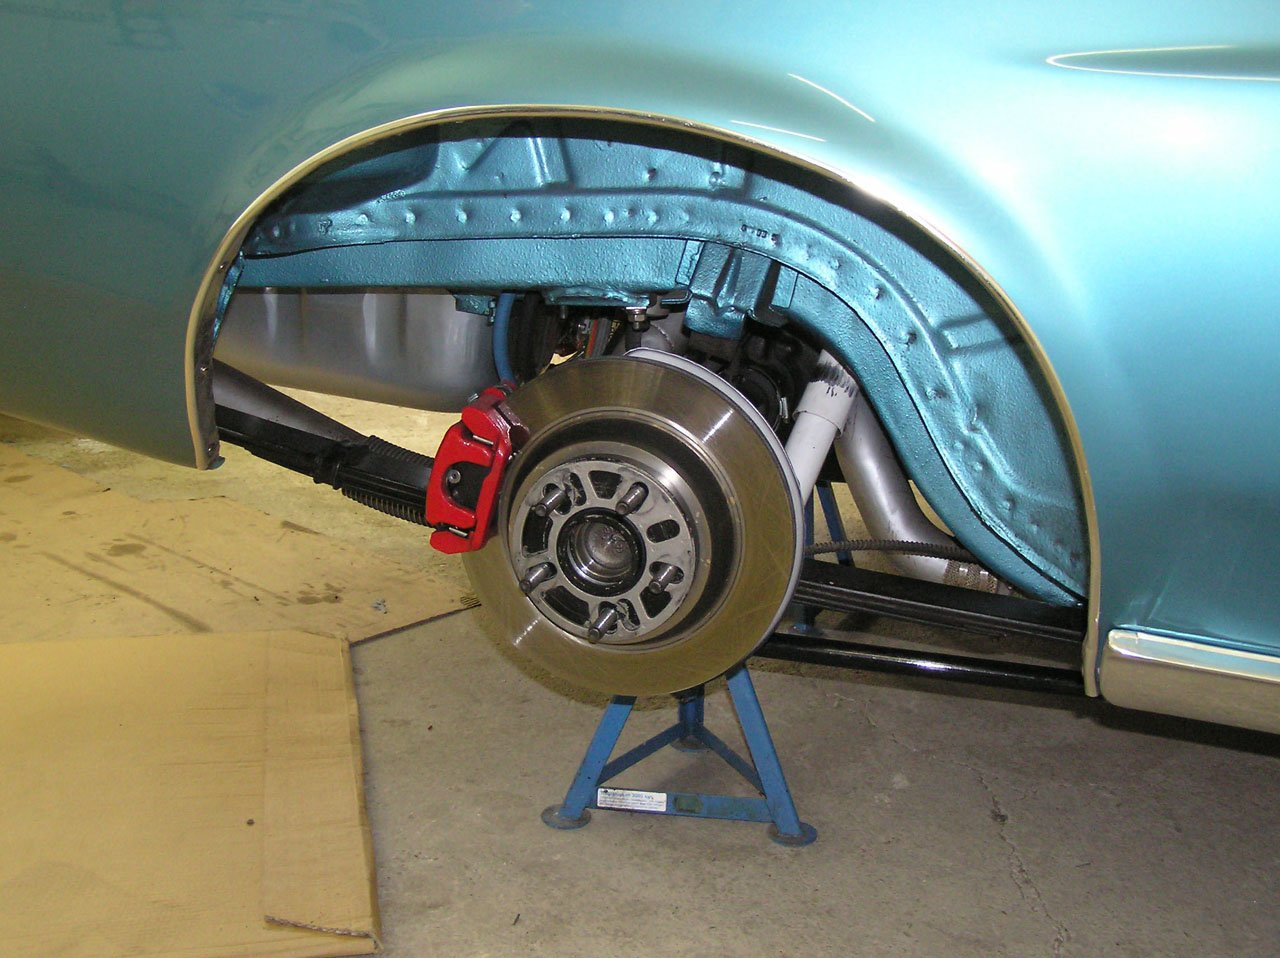 8 8 Quot Rear End Into 1968 Mustang V8 Coupe Ford Mustang Forum